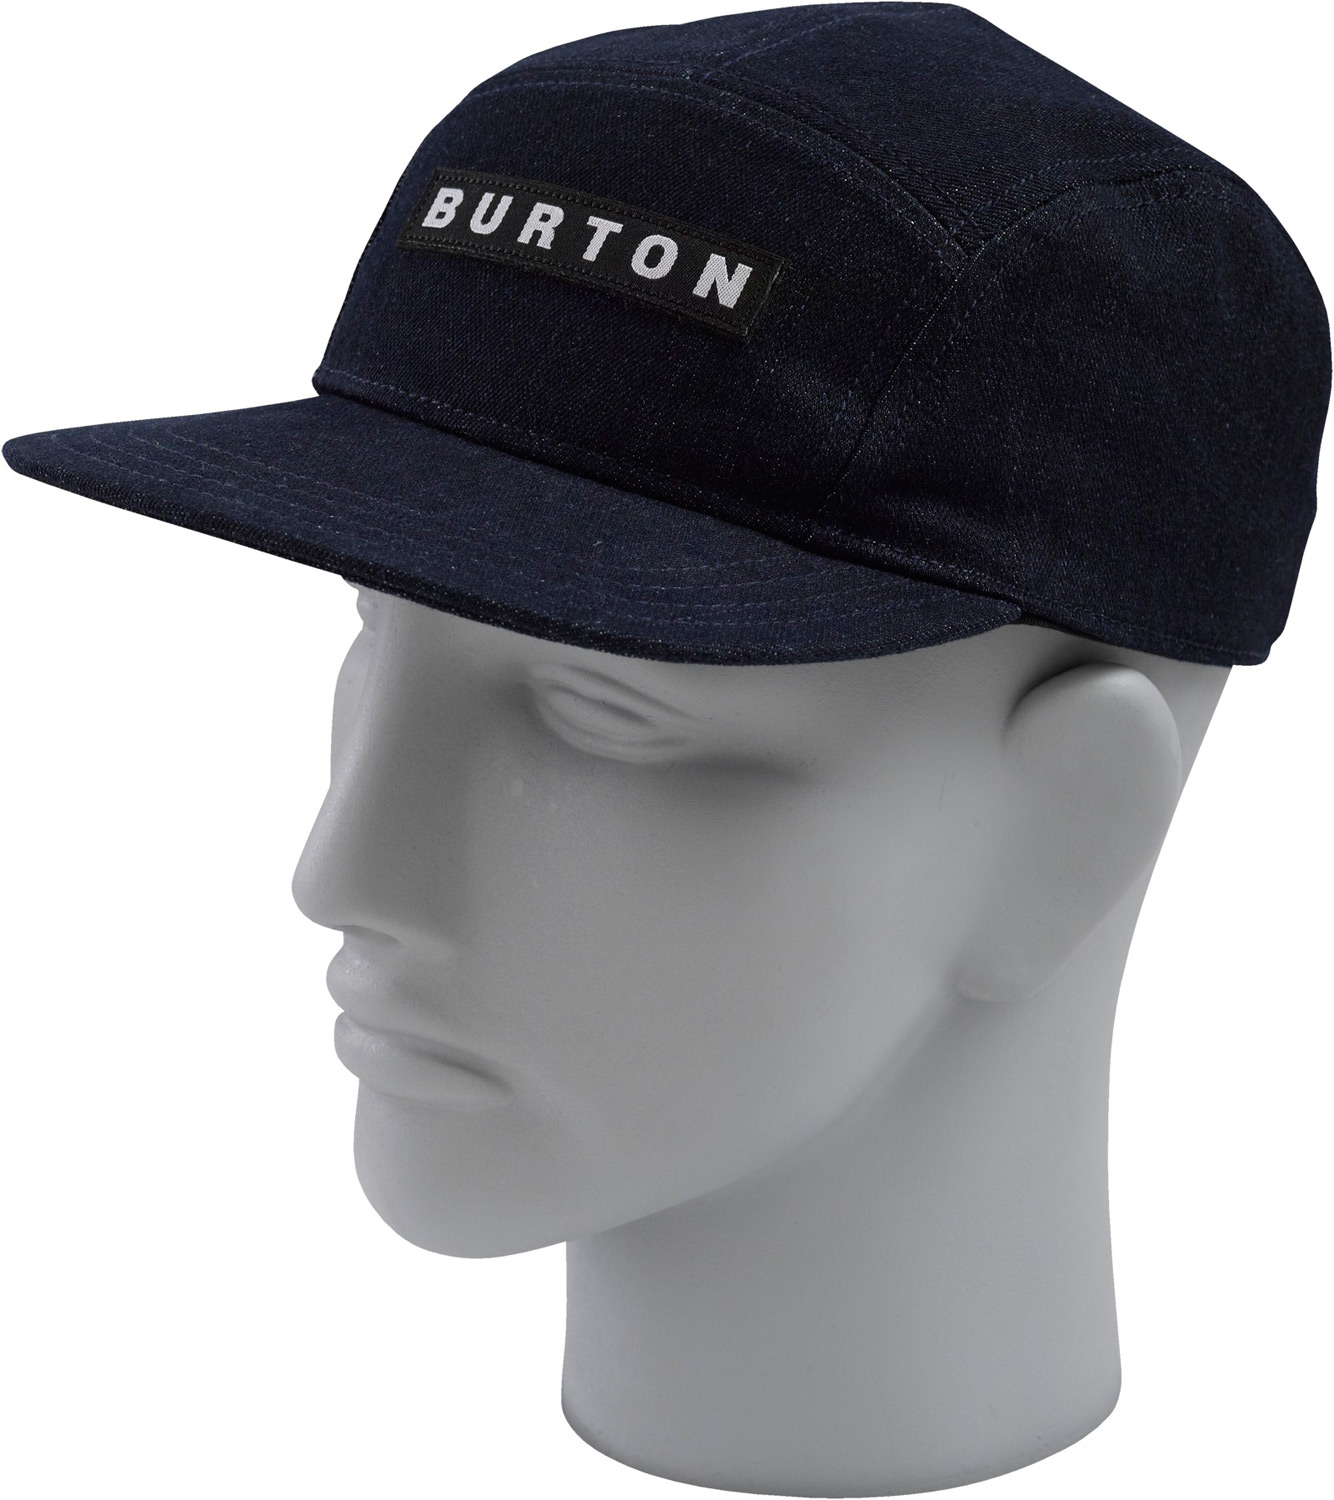 Snowboard Key Features of the Burton Camper Cap:  100% Cotton [Tiger Camo and Quarry Colorways]  50% Wool, 50% Polyester [Weezy Colorway]  Snap Back  Bar Embroidery  Curved Visor - $17.95